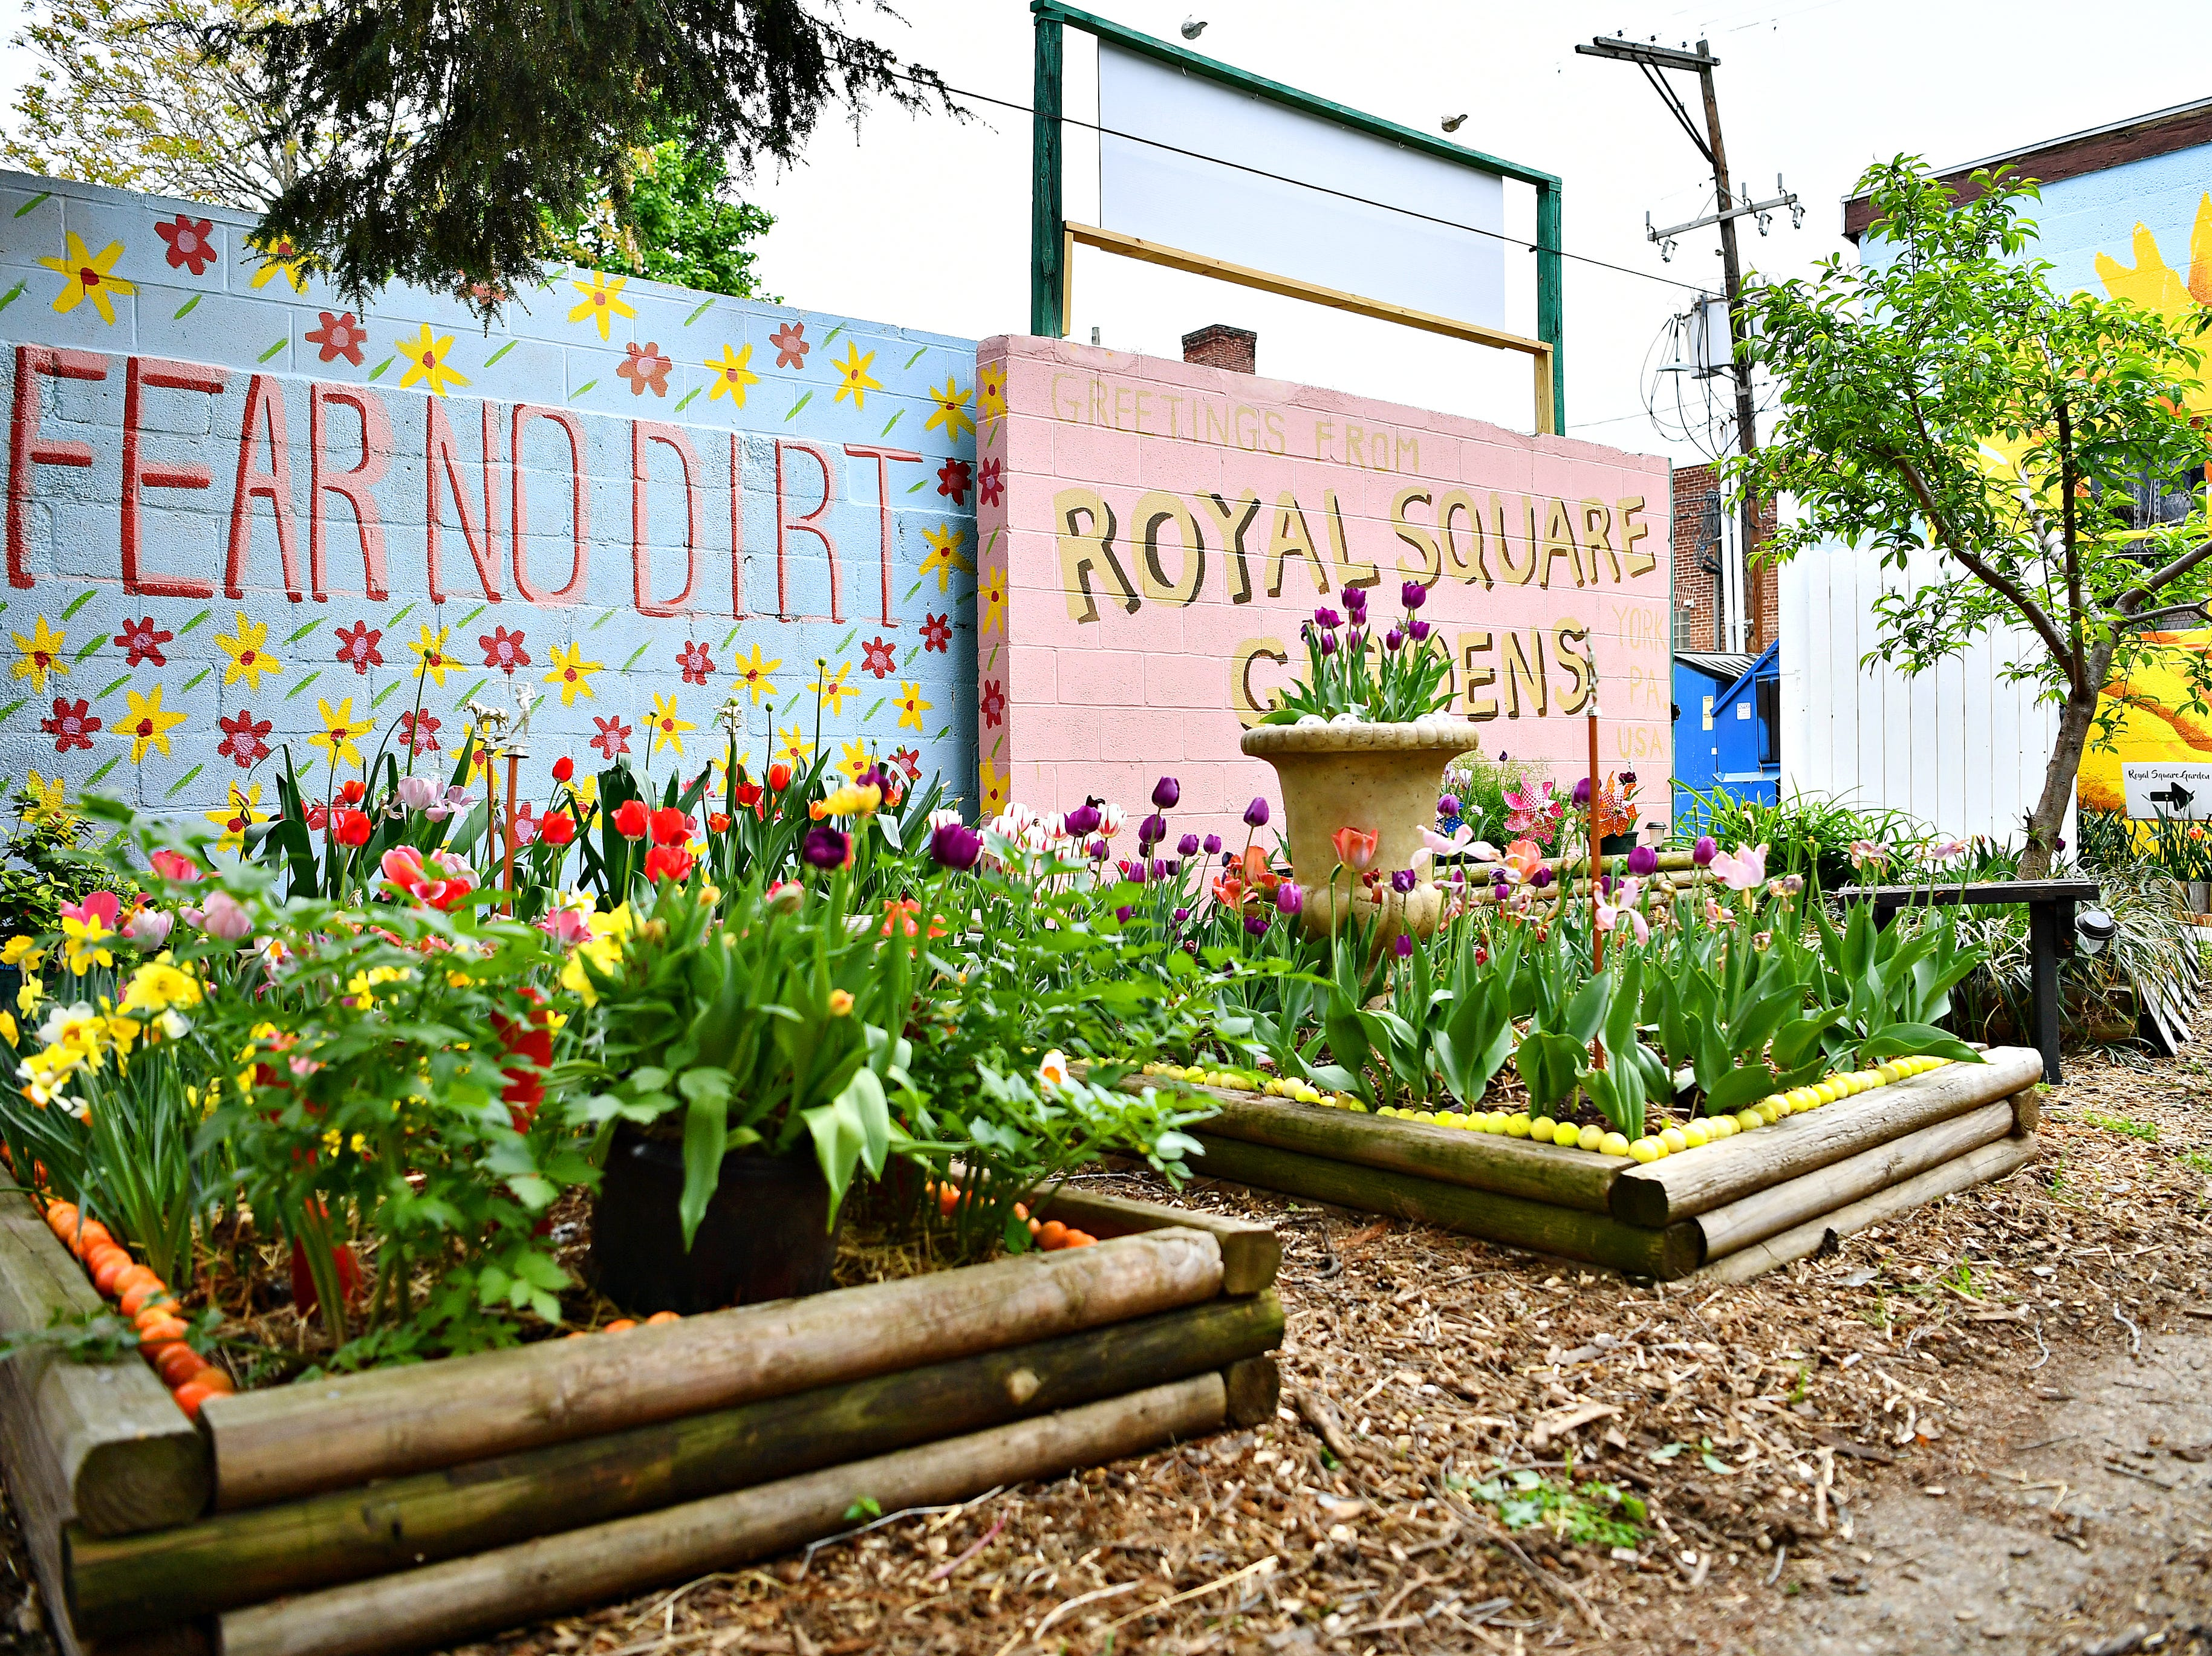 Royal Square Garden in York City, Wednesday, May 1, 2019. Dawn J. Sagert photo